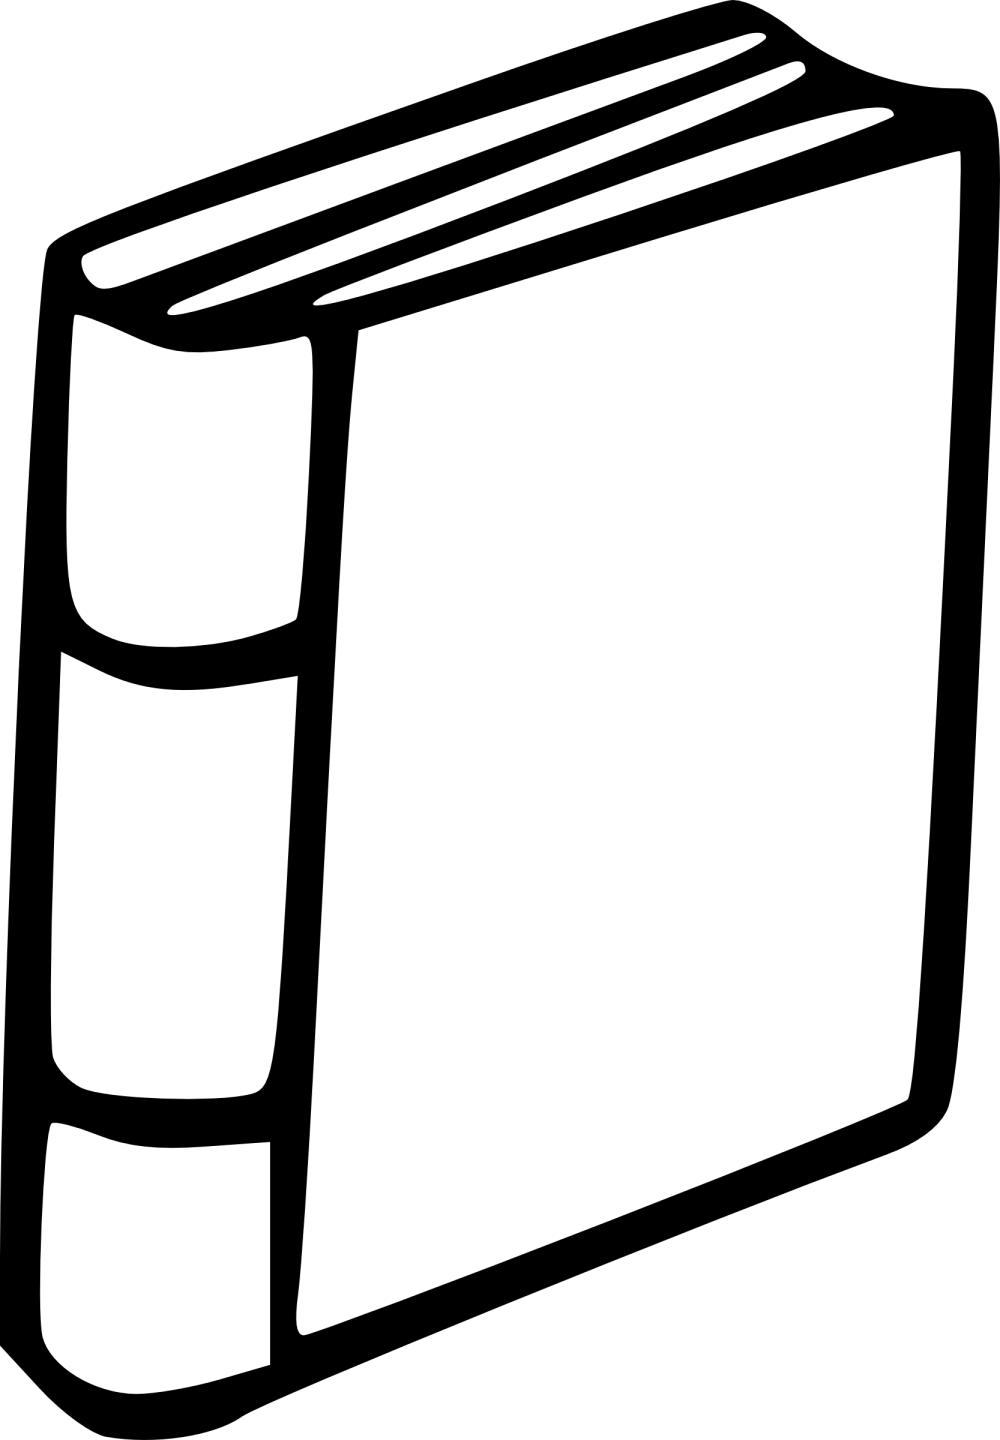 medium resolution of other clipart eci book cliparting